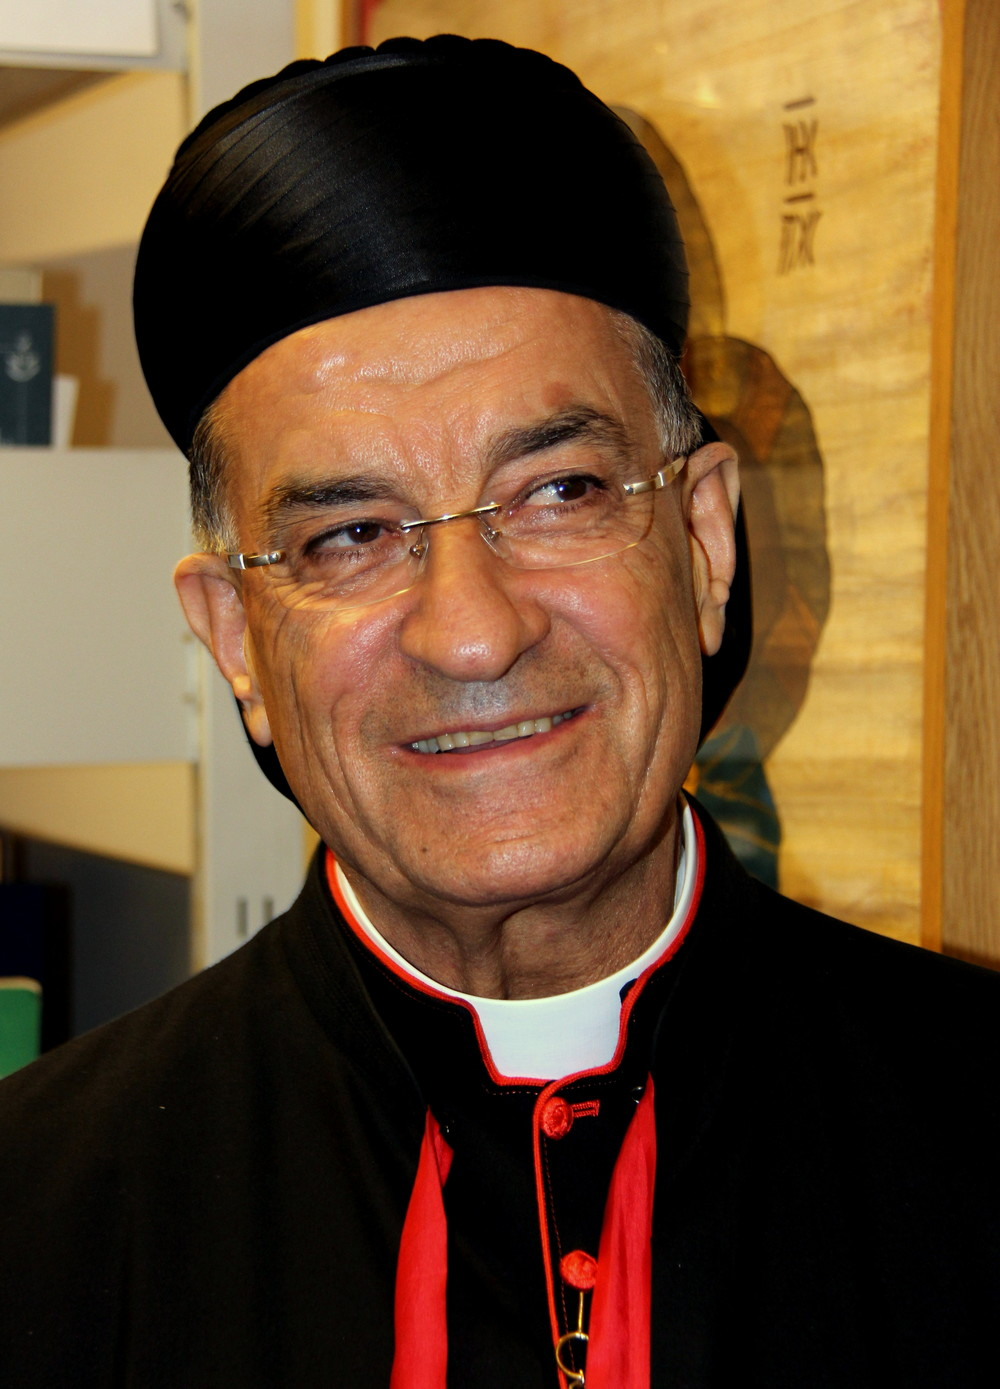 The head of the Lebanese Maronite Catholic Church, Bishop Beshara al-Rahi. Credit: Piotr Rymuza via Wikimedia Commons.